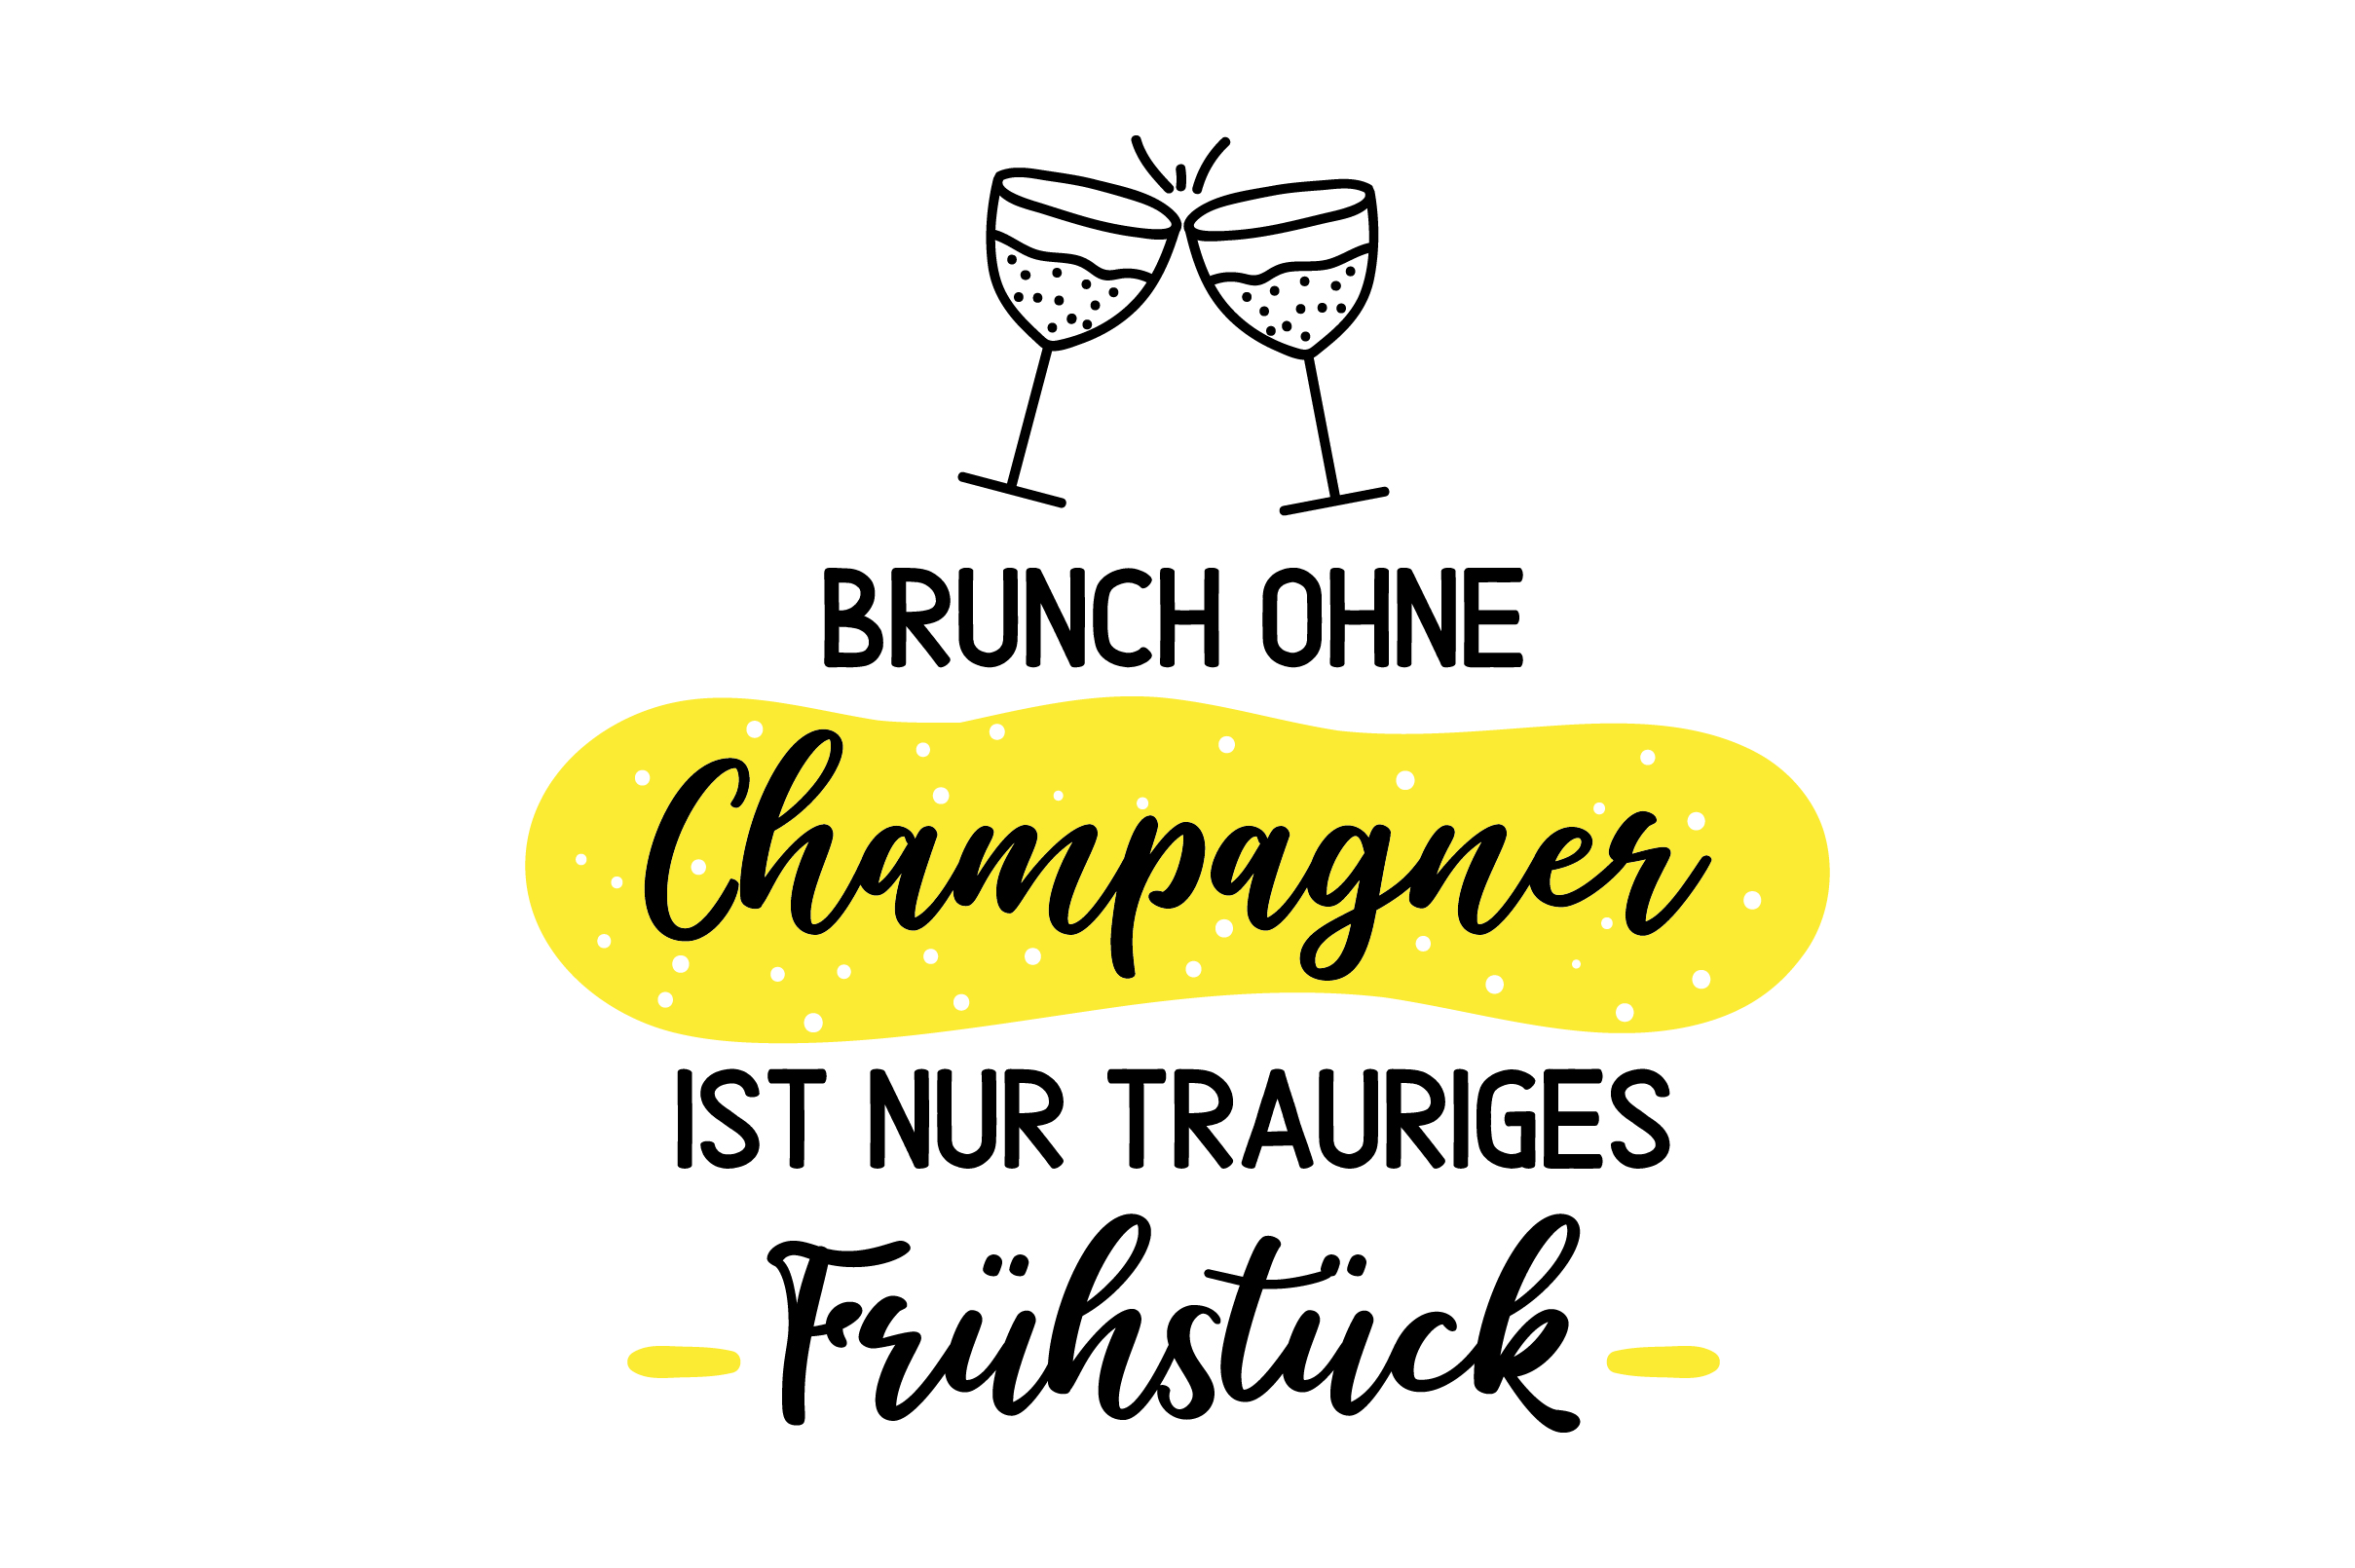 Download Free Brunch Ohne Champagner Ist Nur Trauriges Fruhstuck Svg Cut File for Cricut Explore, Silhouette and other cutting machines.